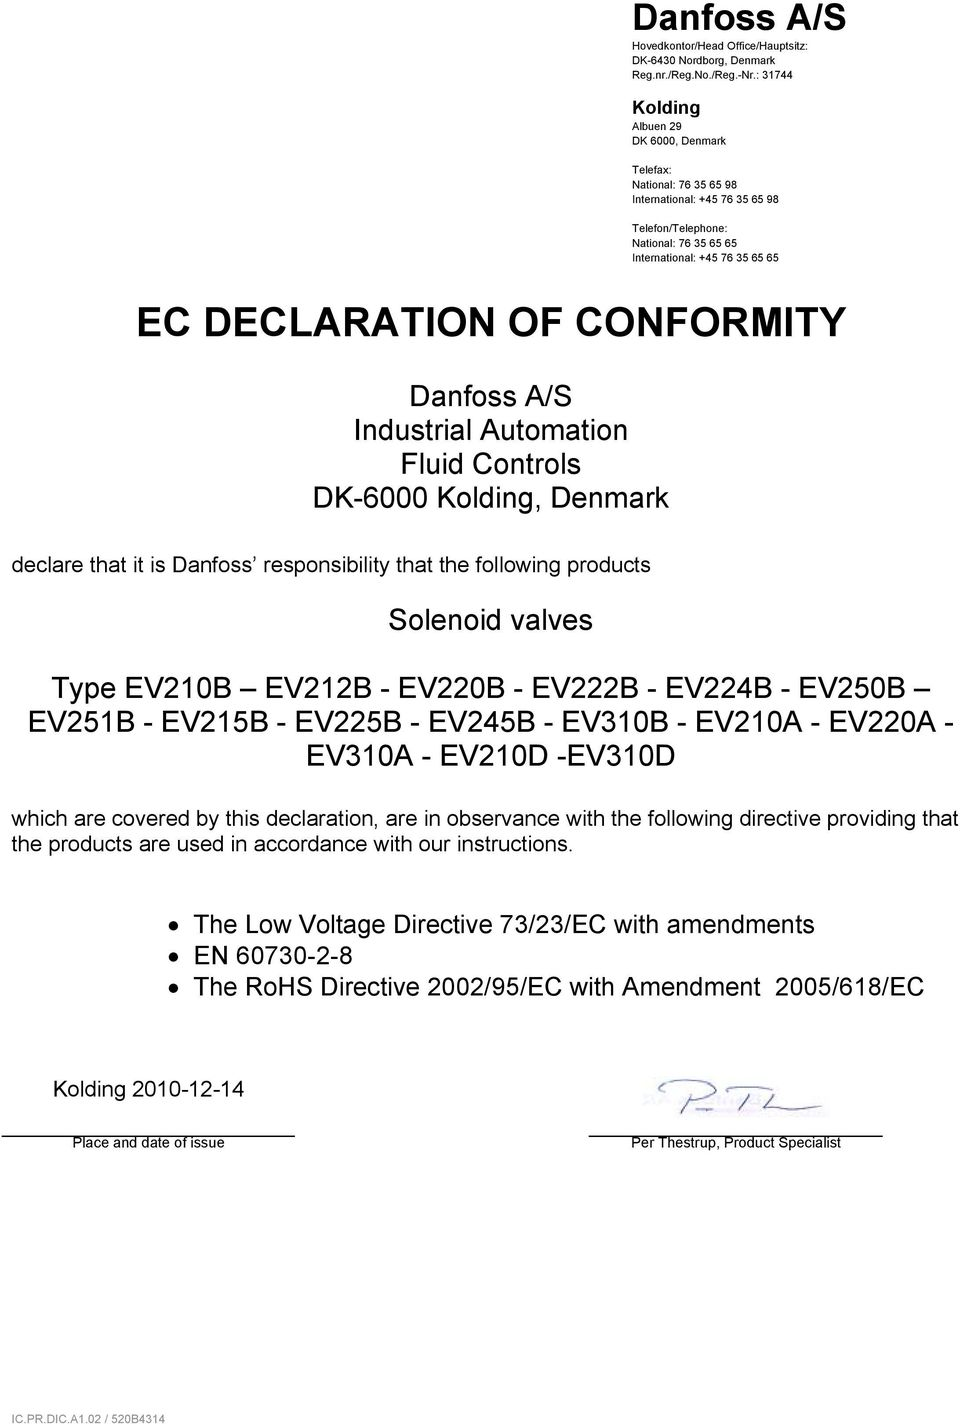 Automation Fluid Controls DK-6000, Denmark declare that it is Danfoss responsibility that the following products Solenoid valves Type EV210B EV212B - EV220B - EV222B - EV224B - EV250B EV251B - EV215B